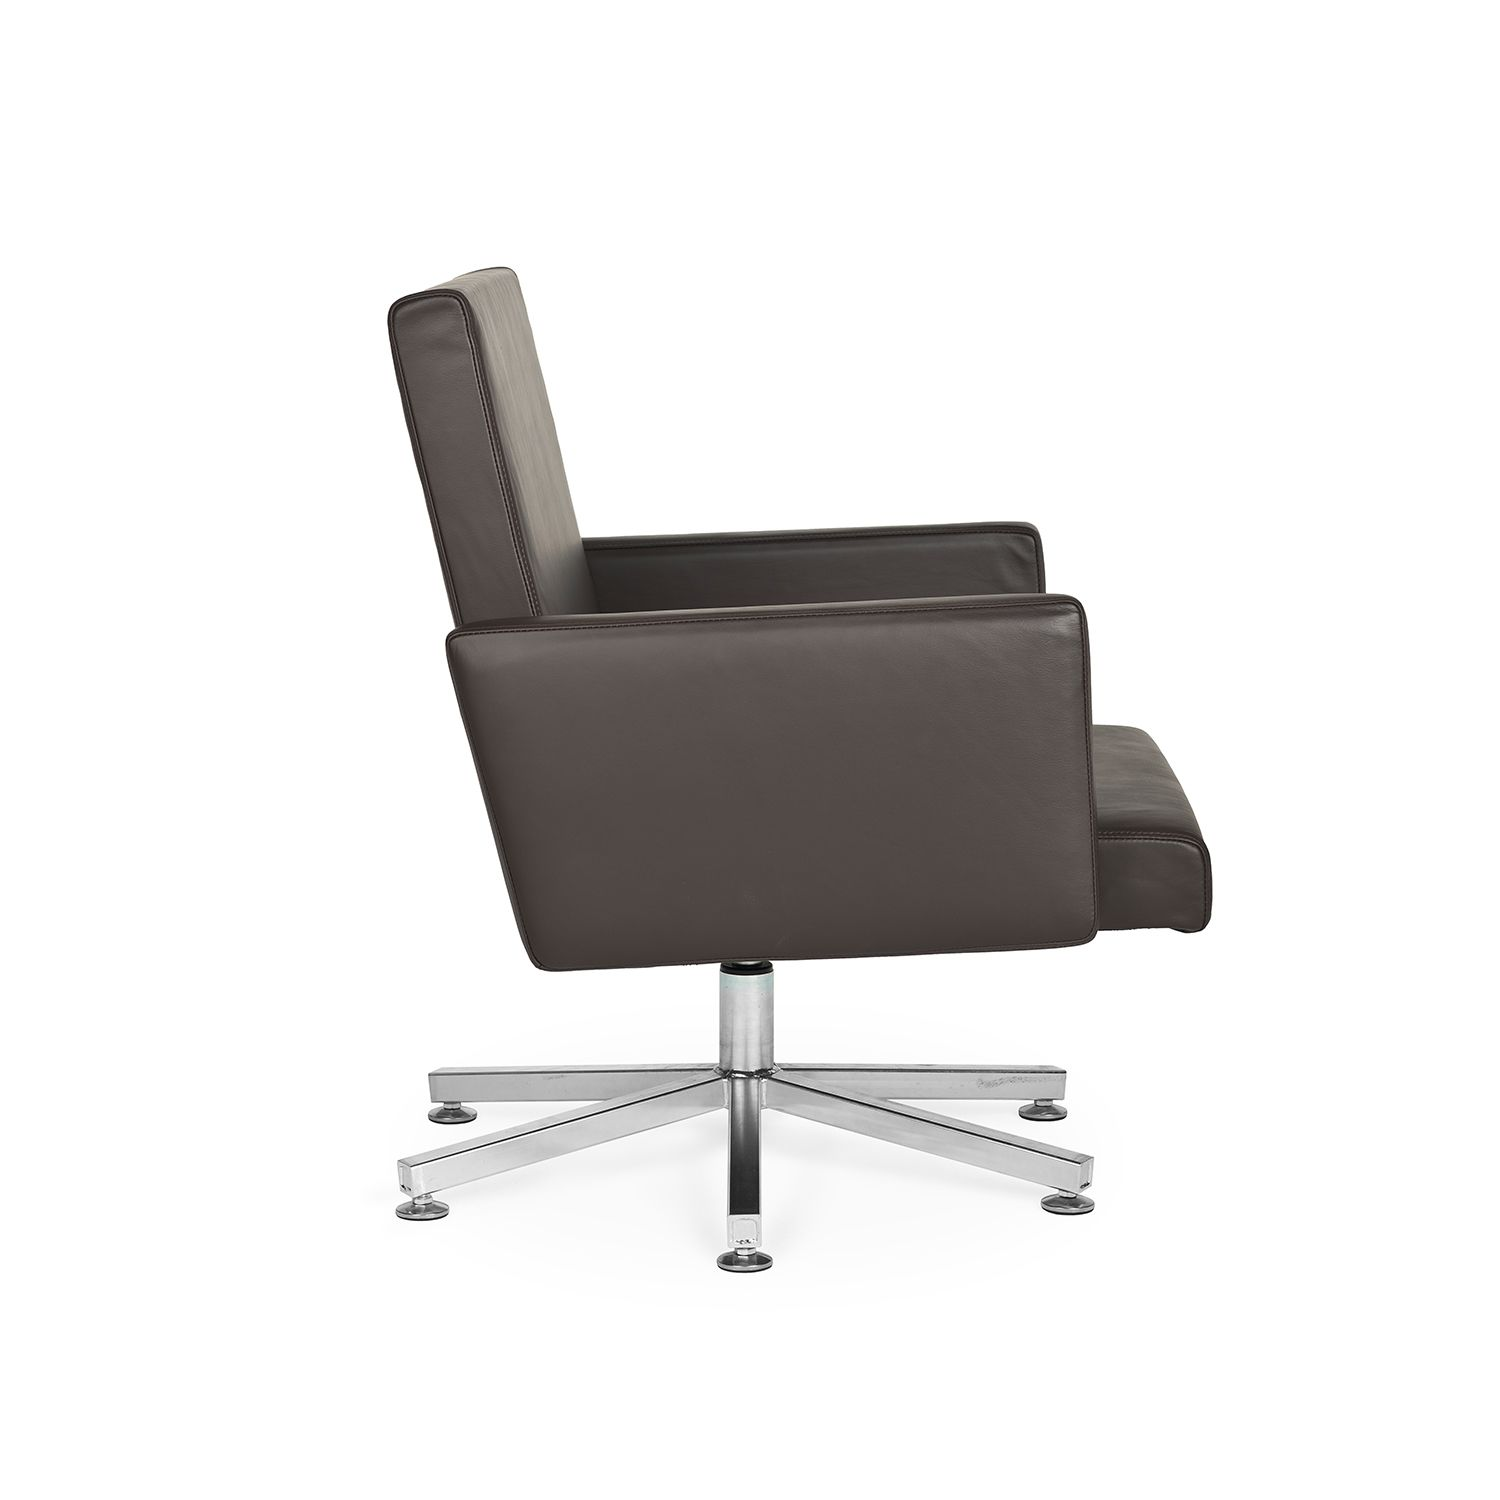 avl spr cathedra lounger